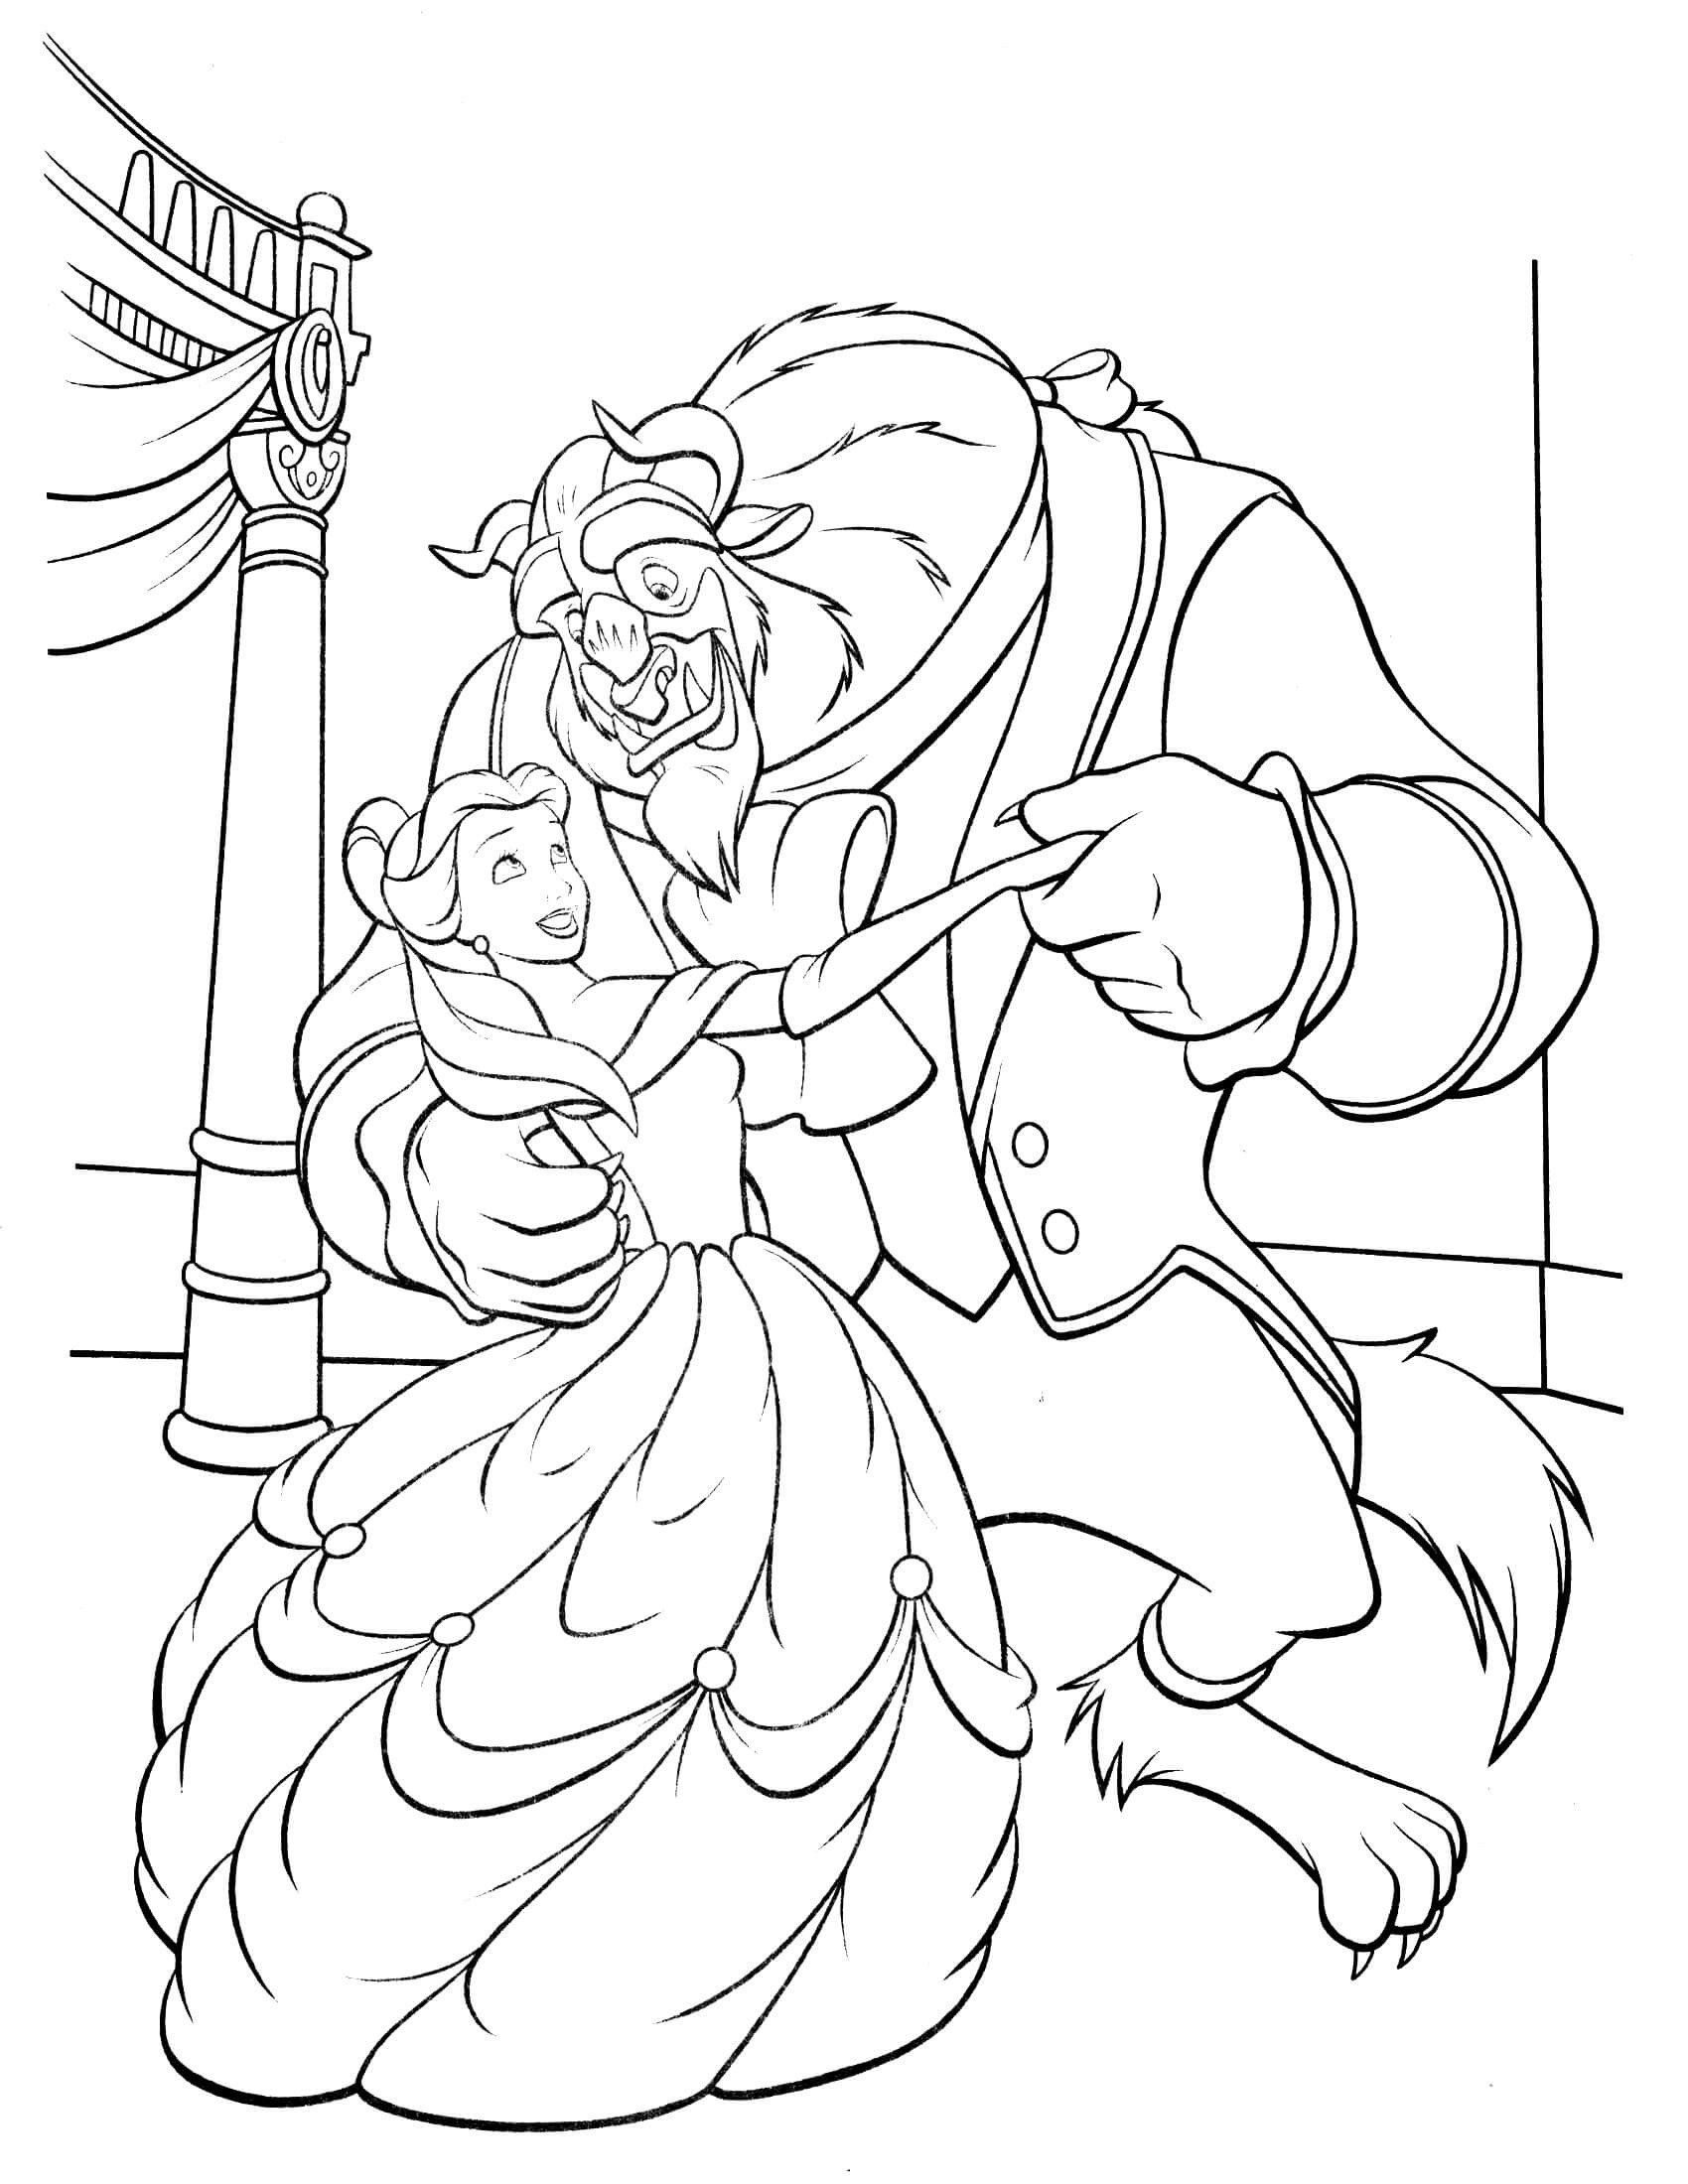 Beauty And Beast Coloring Pages Beauty And Beast 11 Coloringcolor Dance Coloring Pages Disney Coloring Pages Cartoon Coloring Pages